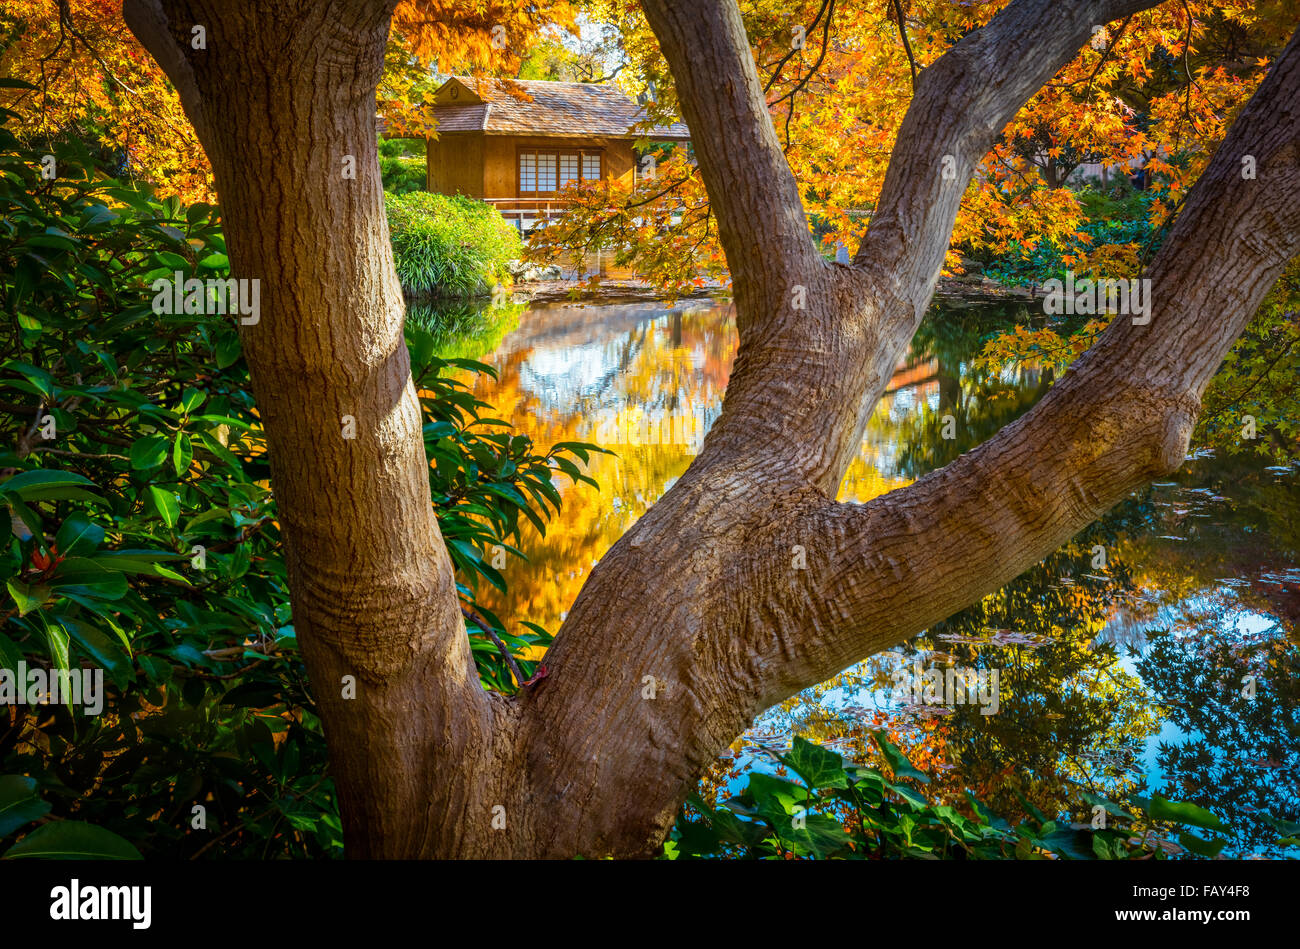 The Fort Worth Japanese Garden is a 7.5-acre Japanese Garden in the Fort Worth (Texas) Botanic Garden - Stock Image